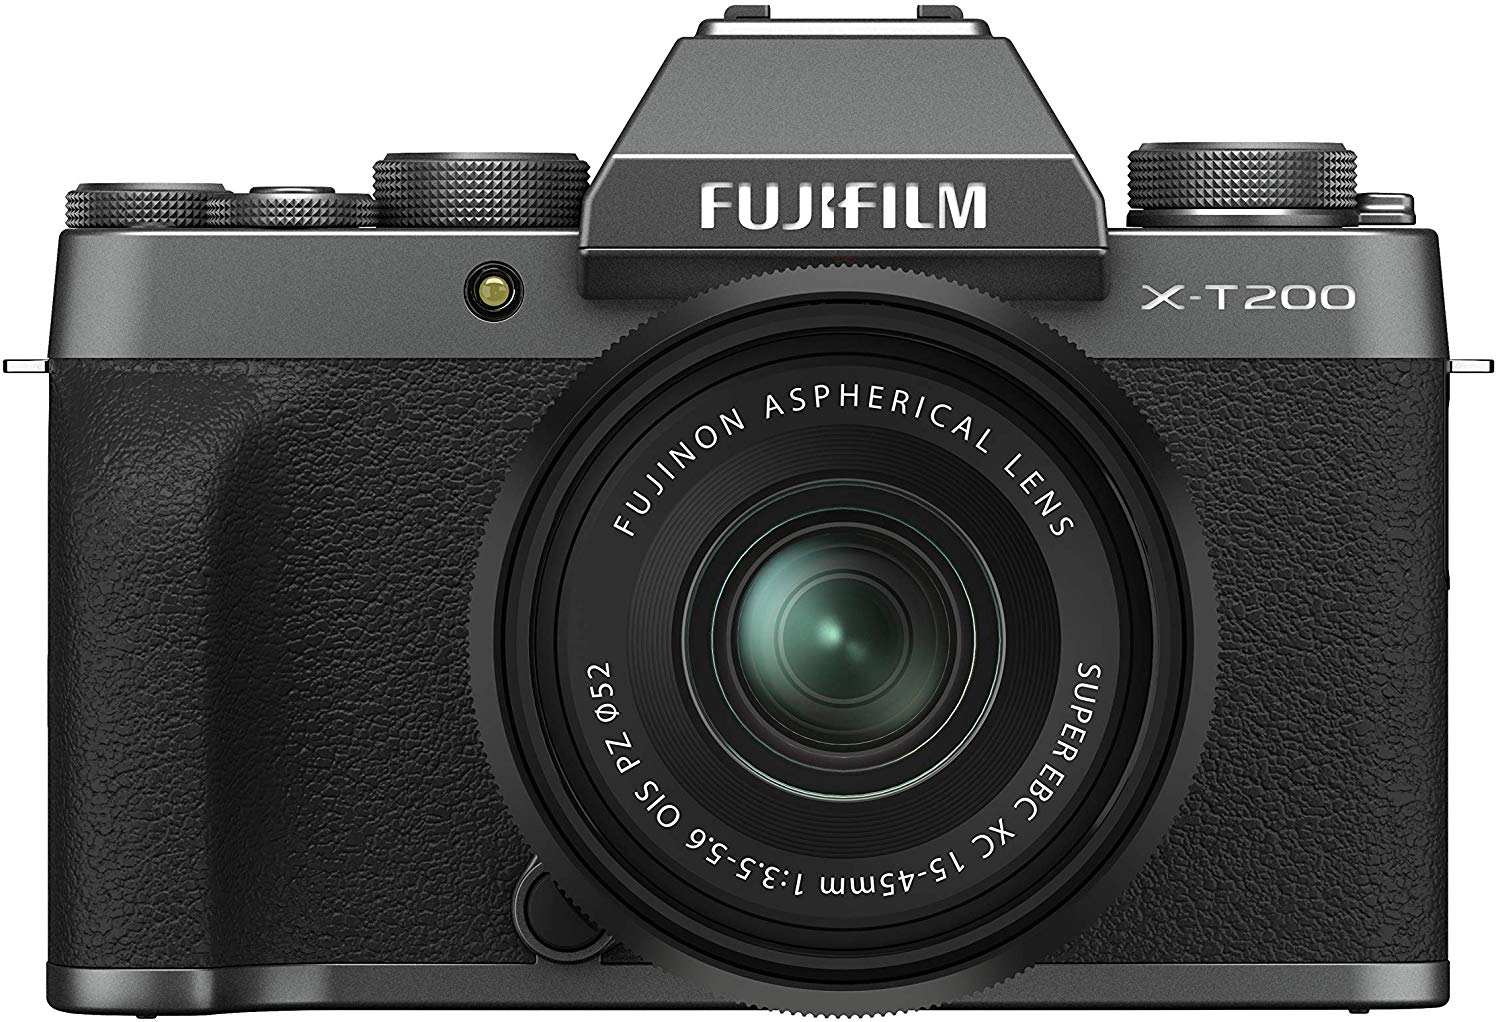 Fujifilm X-T200, a budget-friendly 4k camera is here